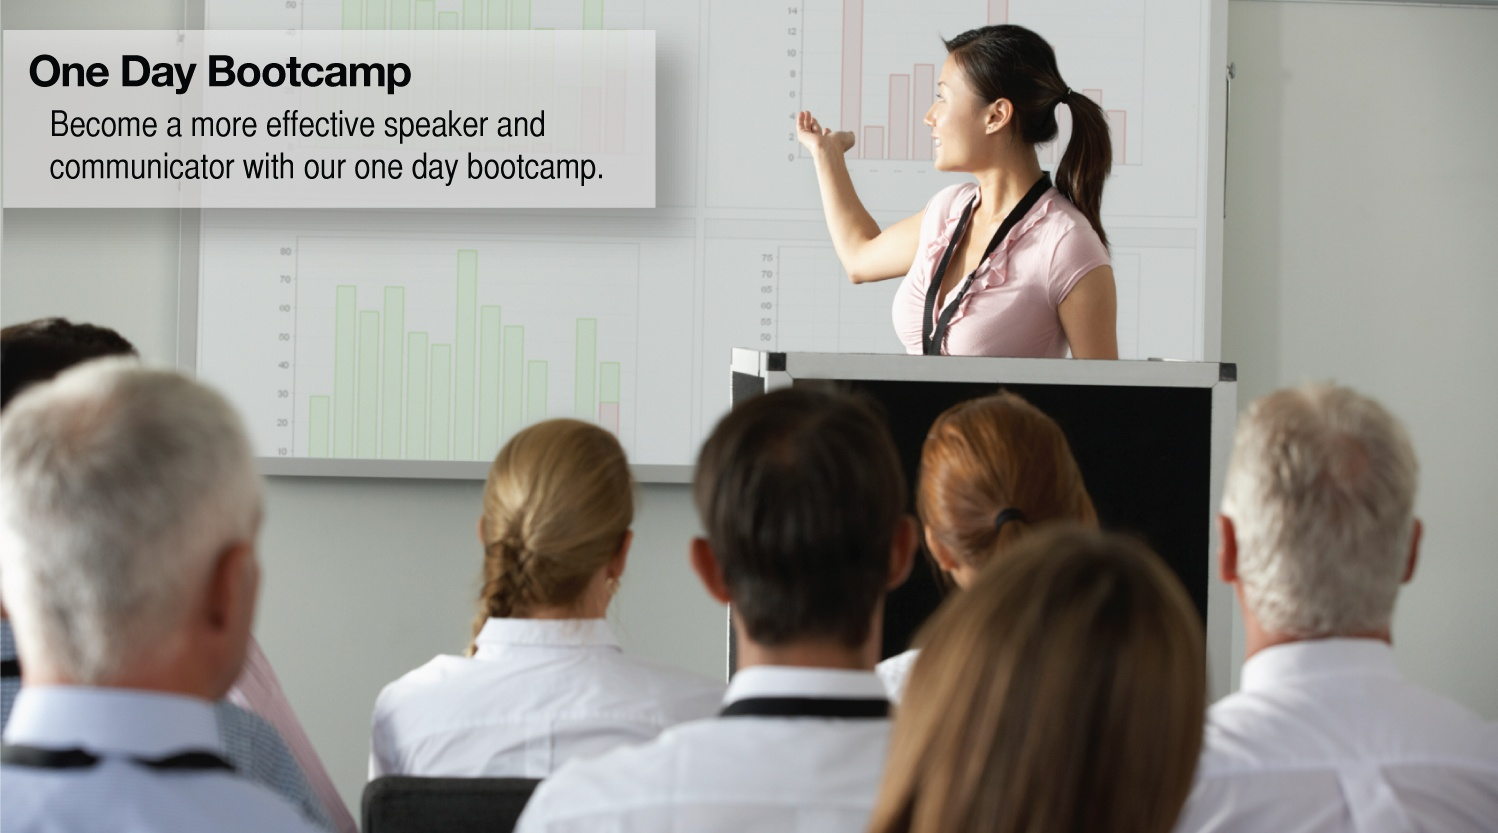 One Day 'Bootcamp' Public Speaking Courses - Accelerated hands-on public speaking training.